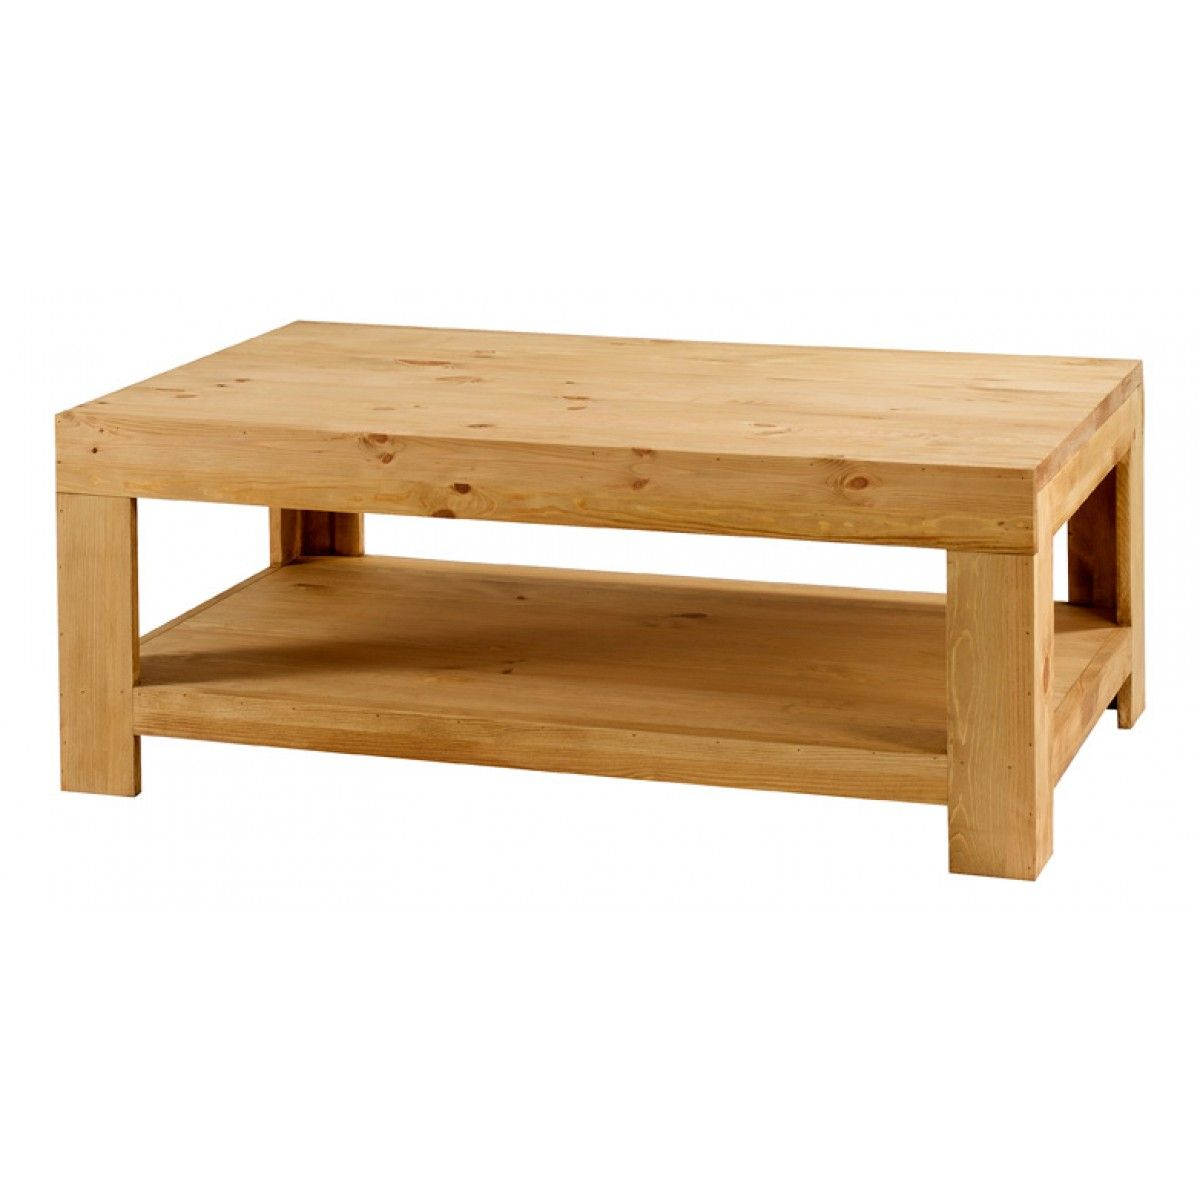 Table basse pin massif 120 cm Colorado